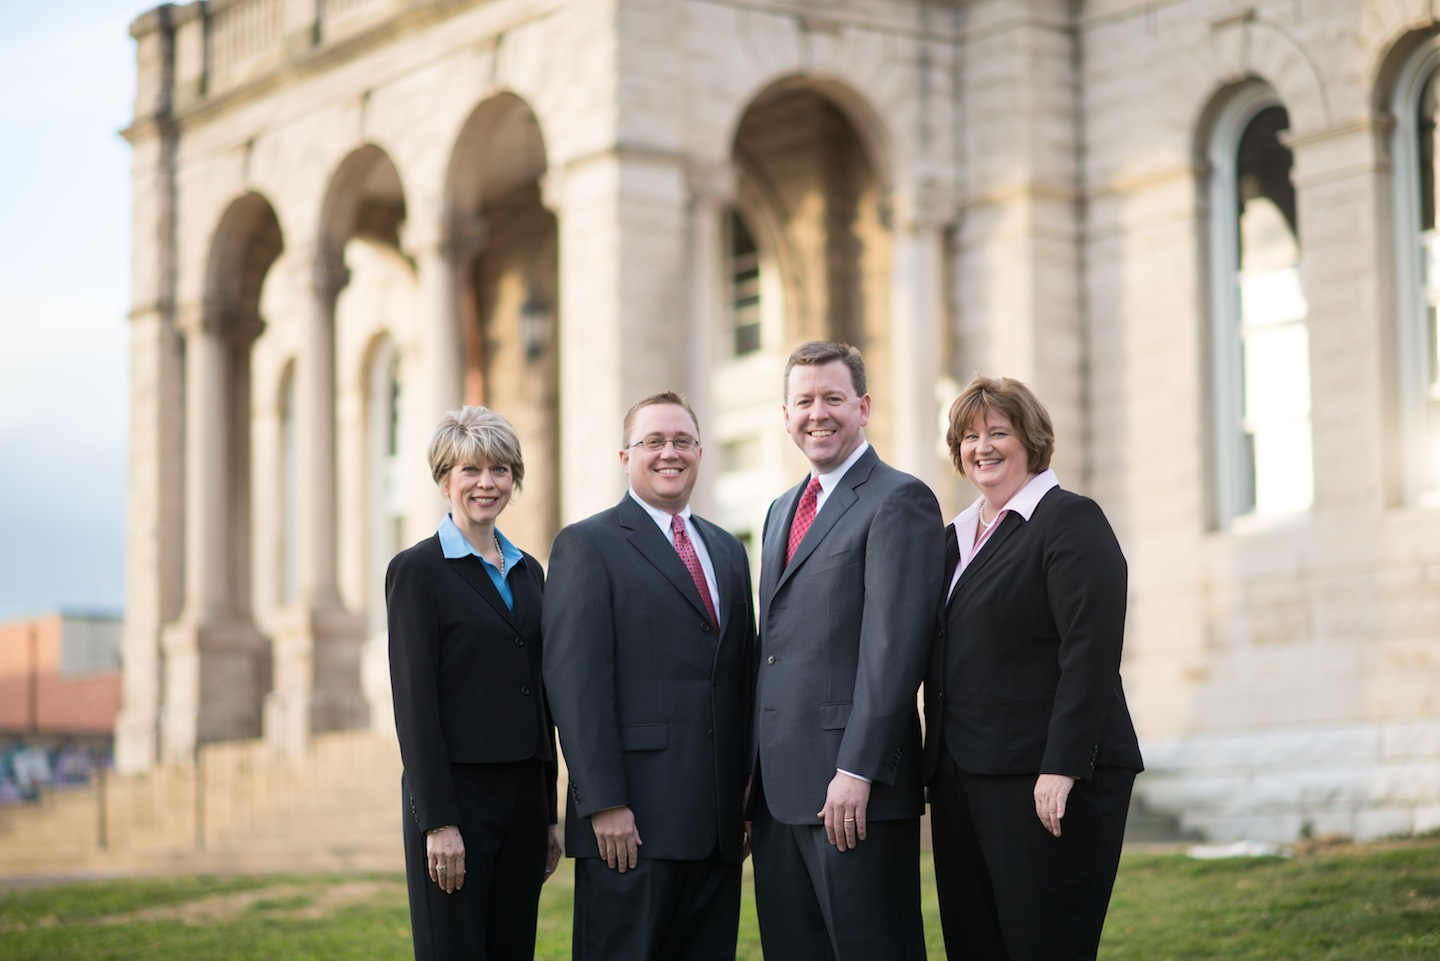 The Four Licensed Agents: Jenny Burden, Brant Suter, Chris Rooker, Cathi Beighe